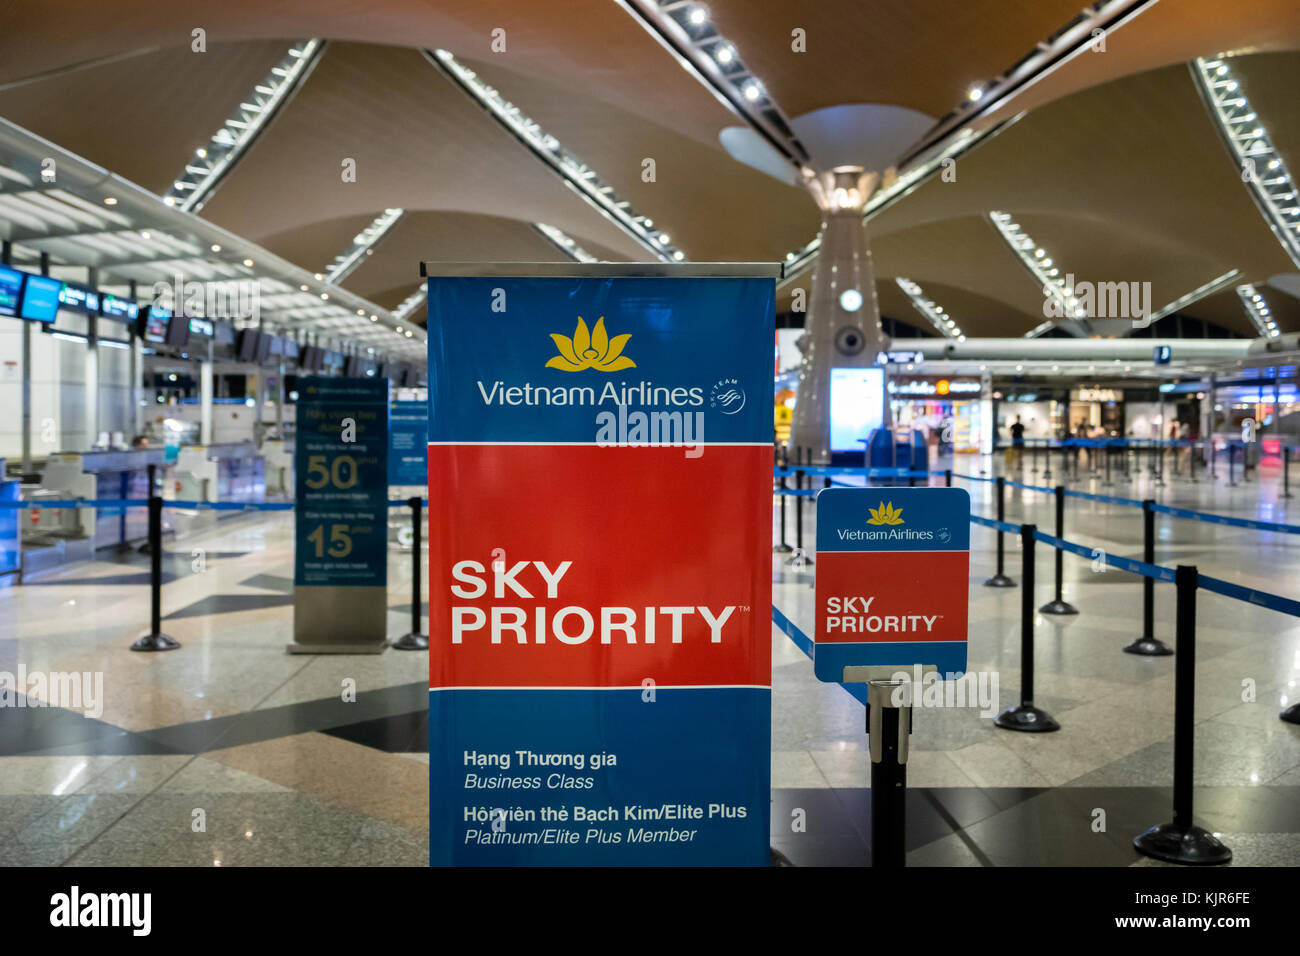 Airport immigration counter stock photos airport - Vietnam airlines kuala lumpur office ...